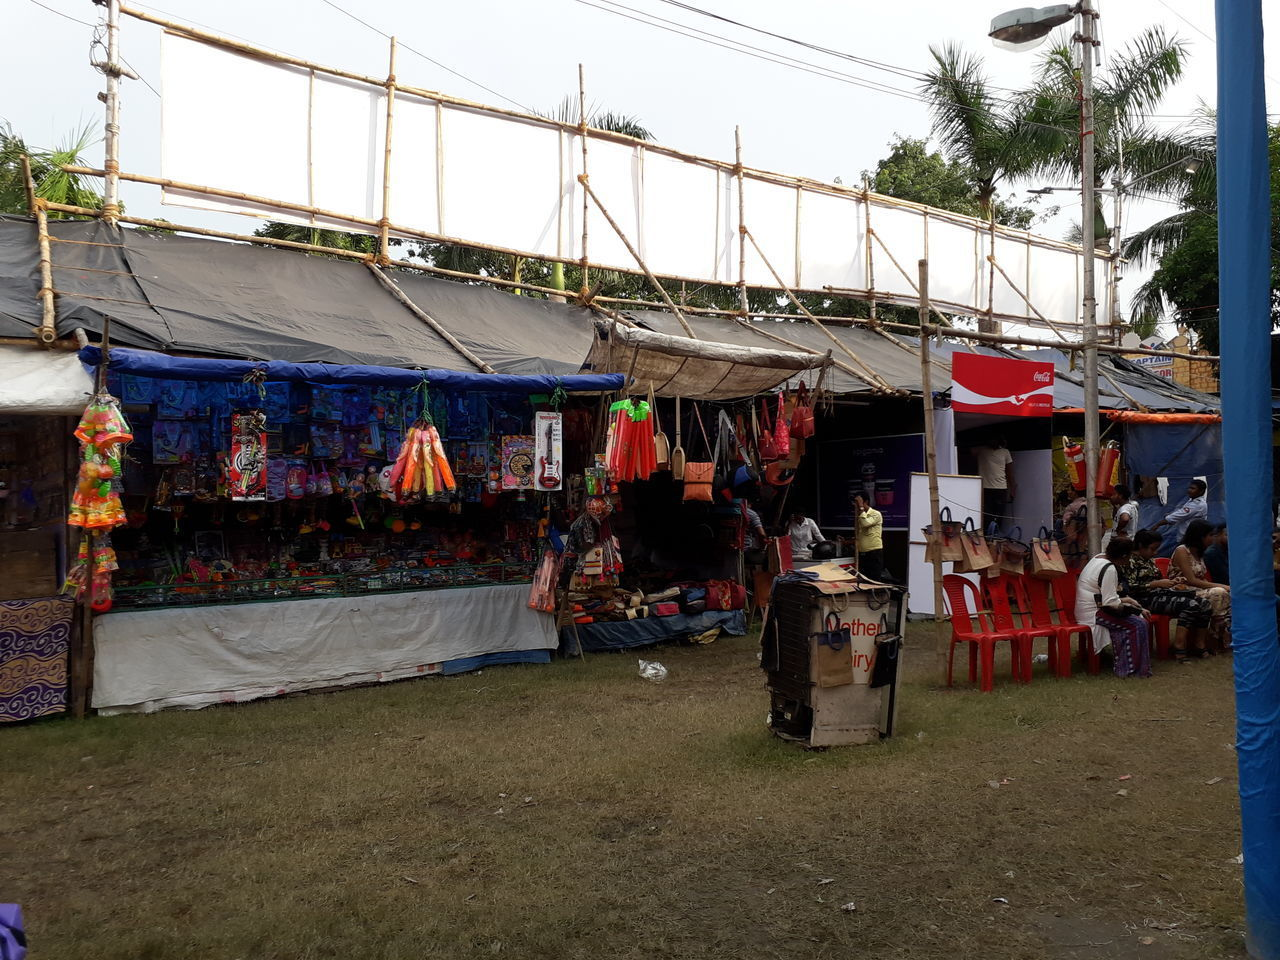 VIEW OF MARKET FOR SALE